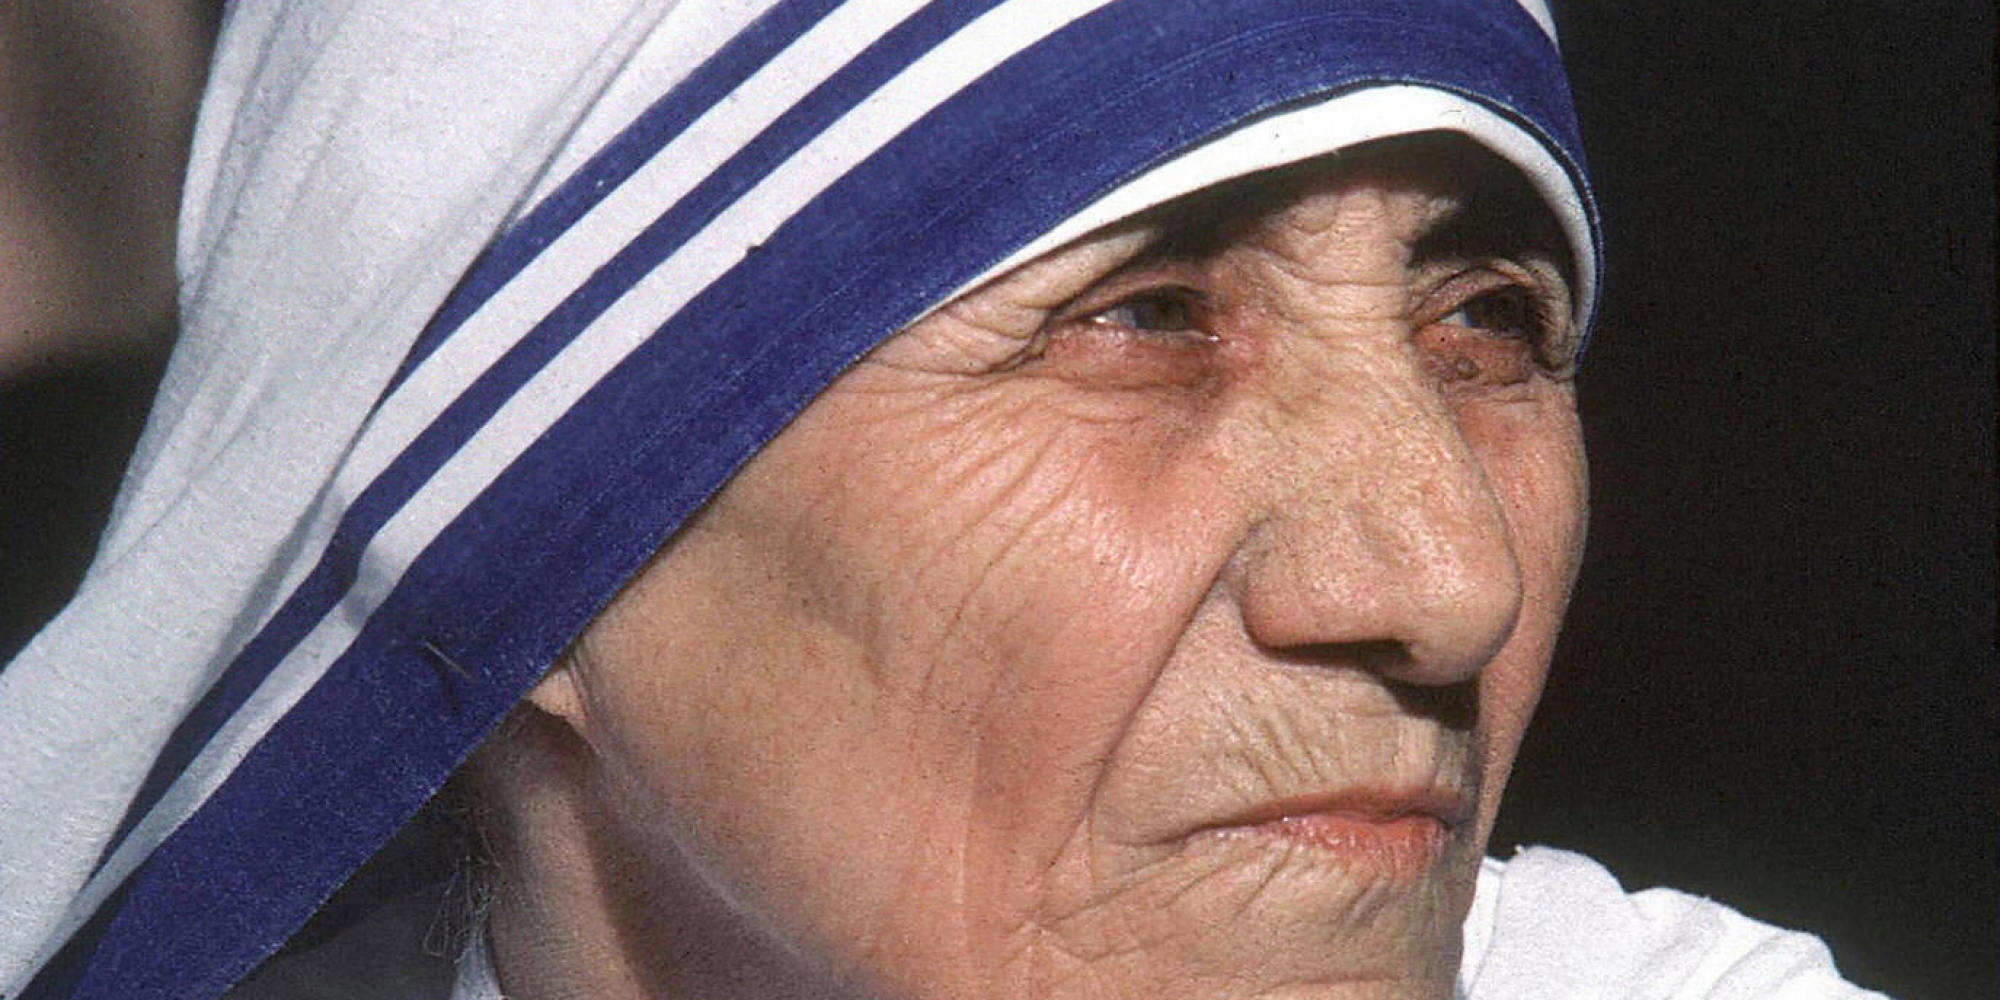 mother terresa Mother teresa, a nun who dedicated her life to helping the poor in india, will be canonized as a saint september 4, pope francis announced tuesday.